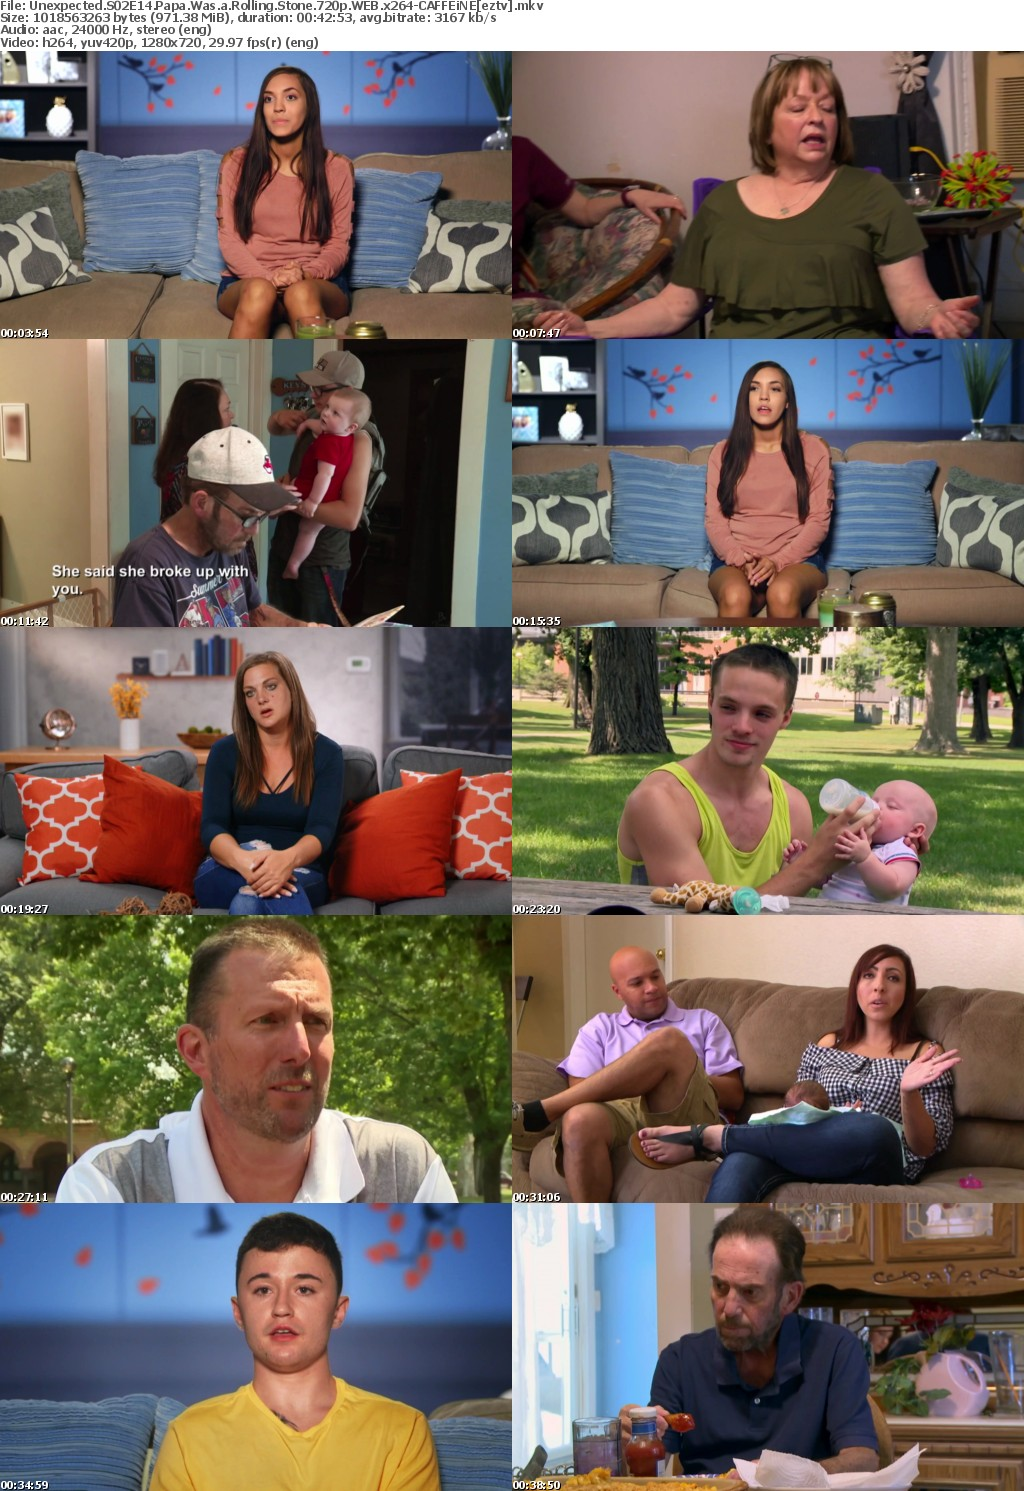 Unexpected S02E14 Papa Was a Rolling Stone 720p WEB x264-CAFFEiNE